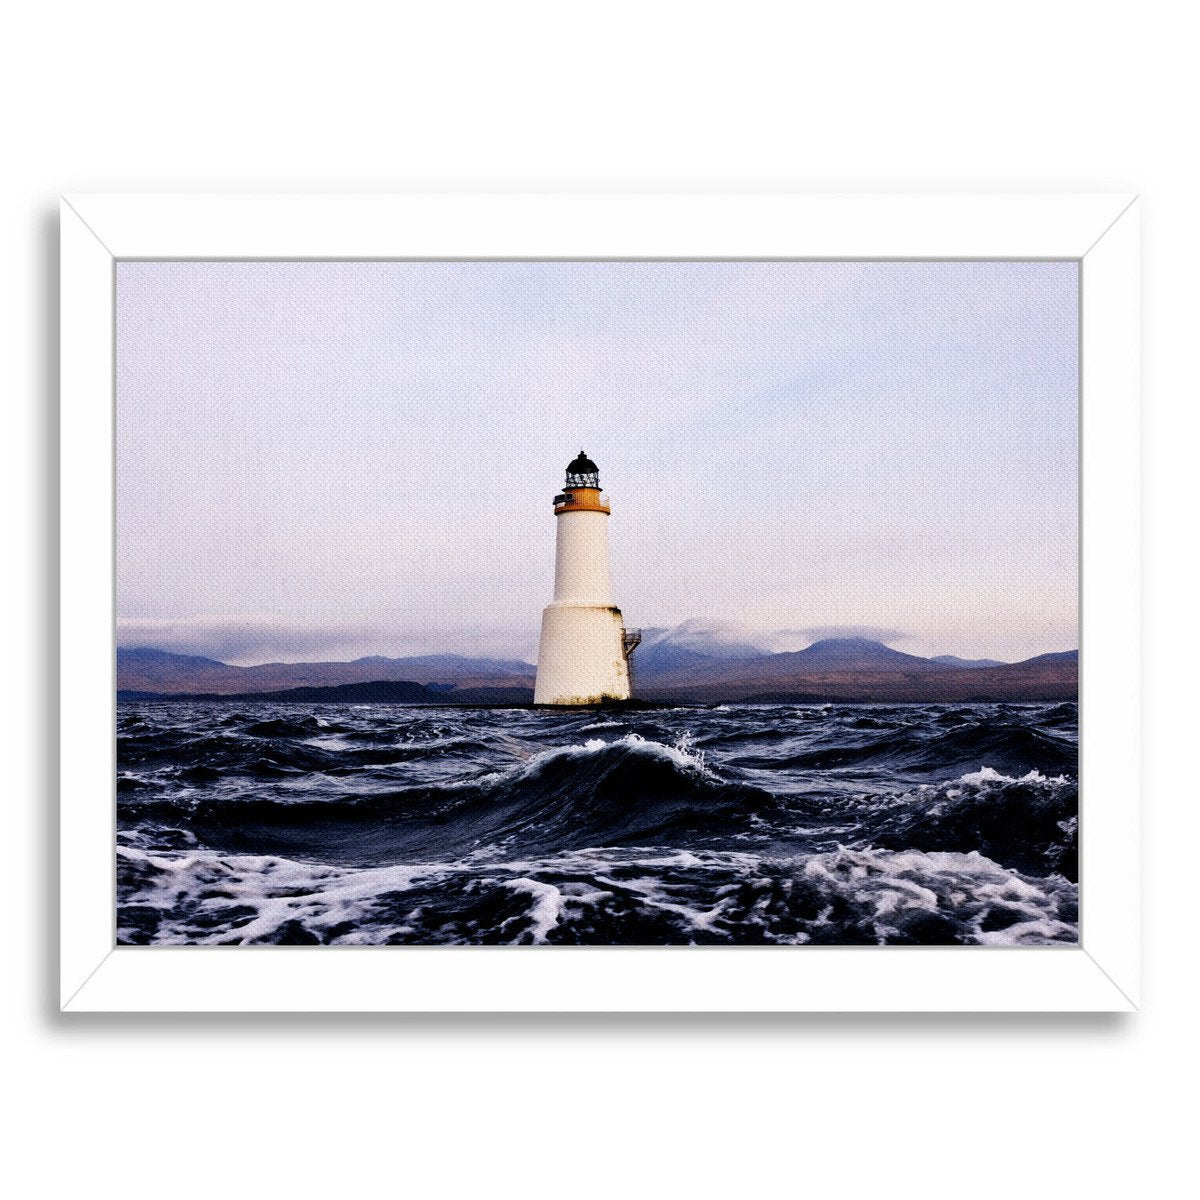 Lighthouse 2 By Nuada - Framed Print - Americanflat